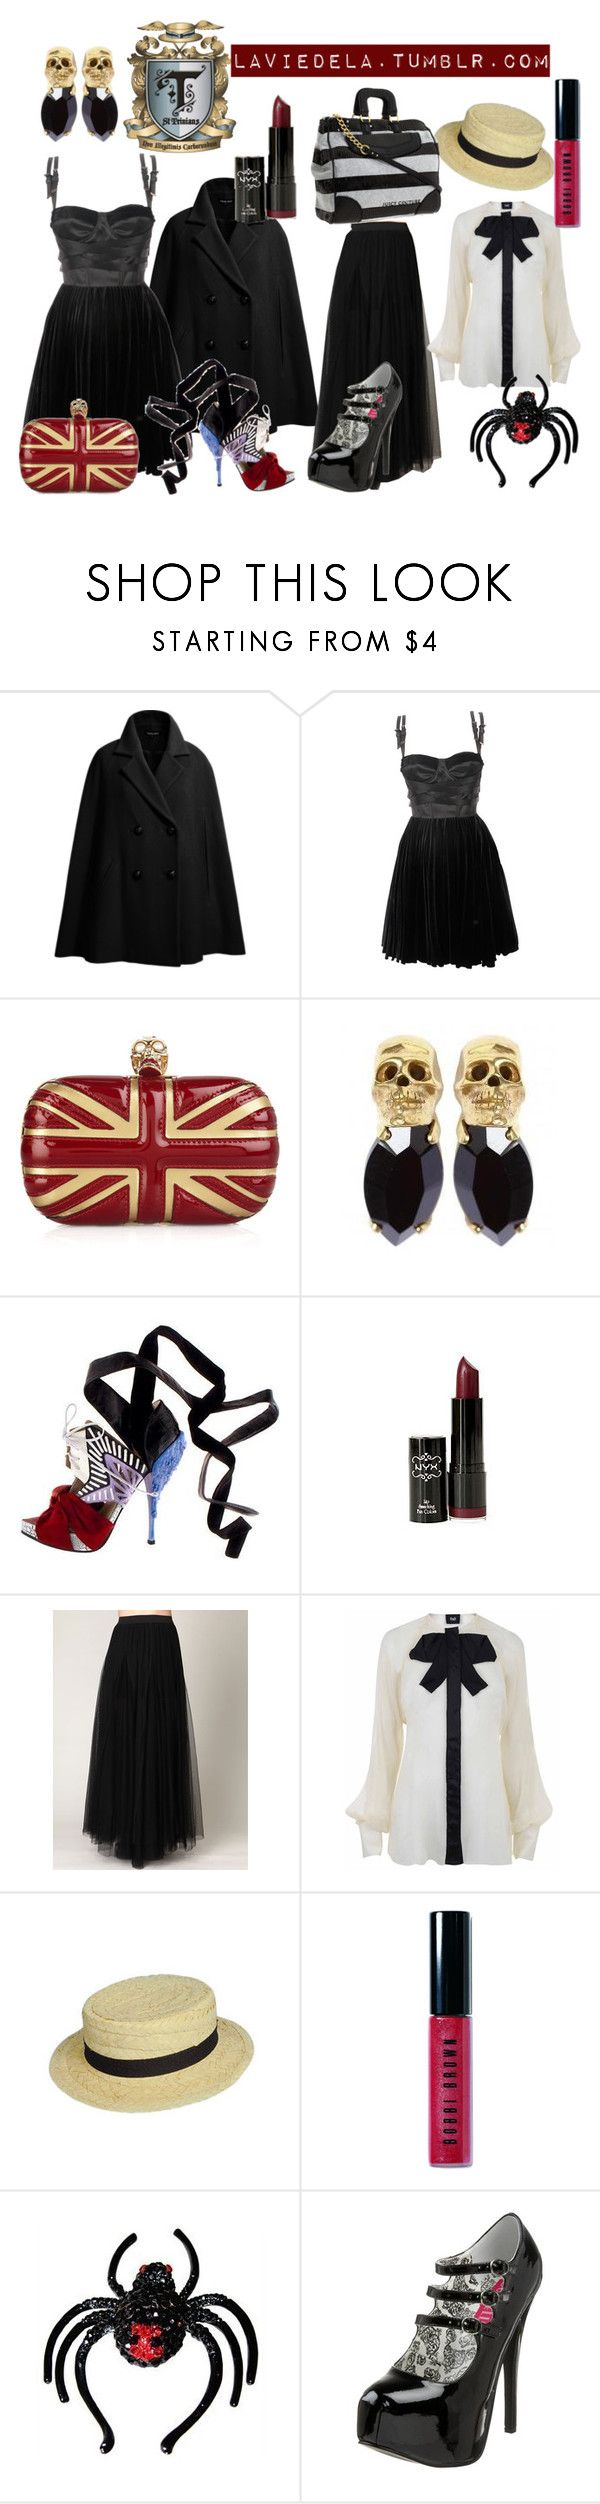 """""""St. Trinians Series 3 - """"We're not goths, we're emos."""""""" by laviedela ❤ liked on Polyvore featuring Isabella Oliver, Versus, Alexander McQueen, Iosselliani, Rodarte, Free People, D&G, Bobbi Brown Cosmetics, Pleaser and Juicy Couture"""